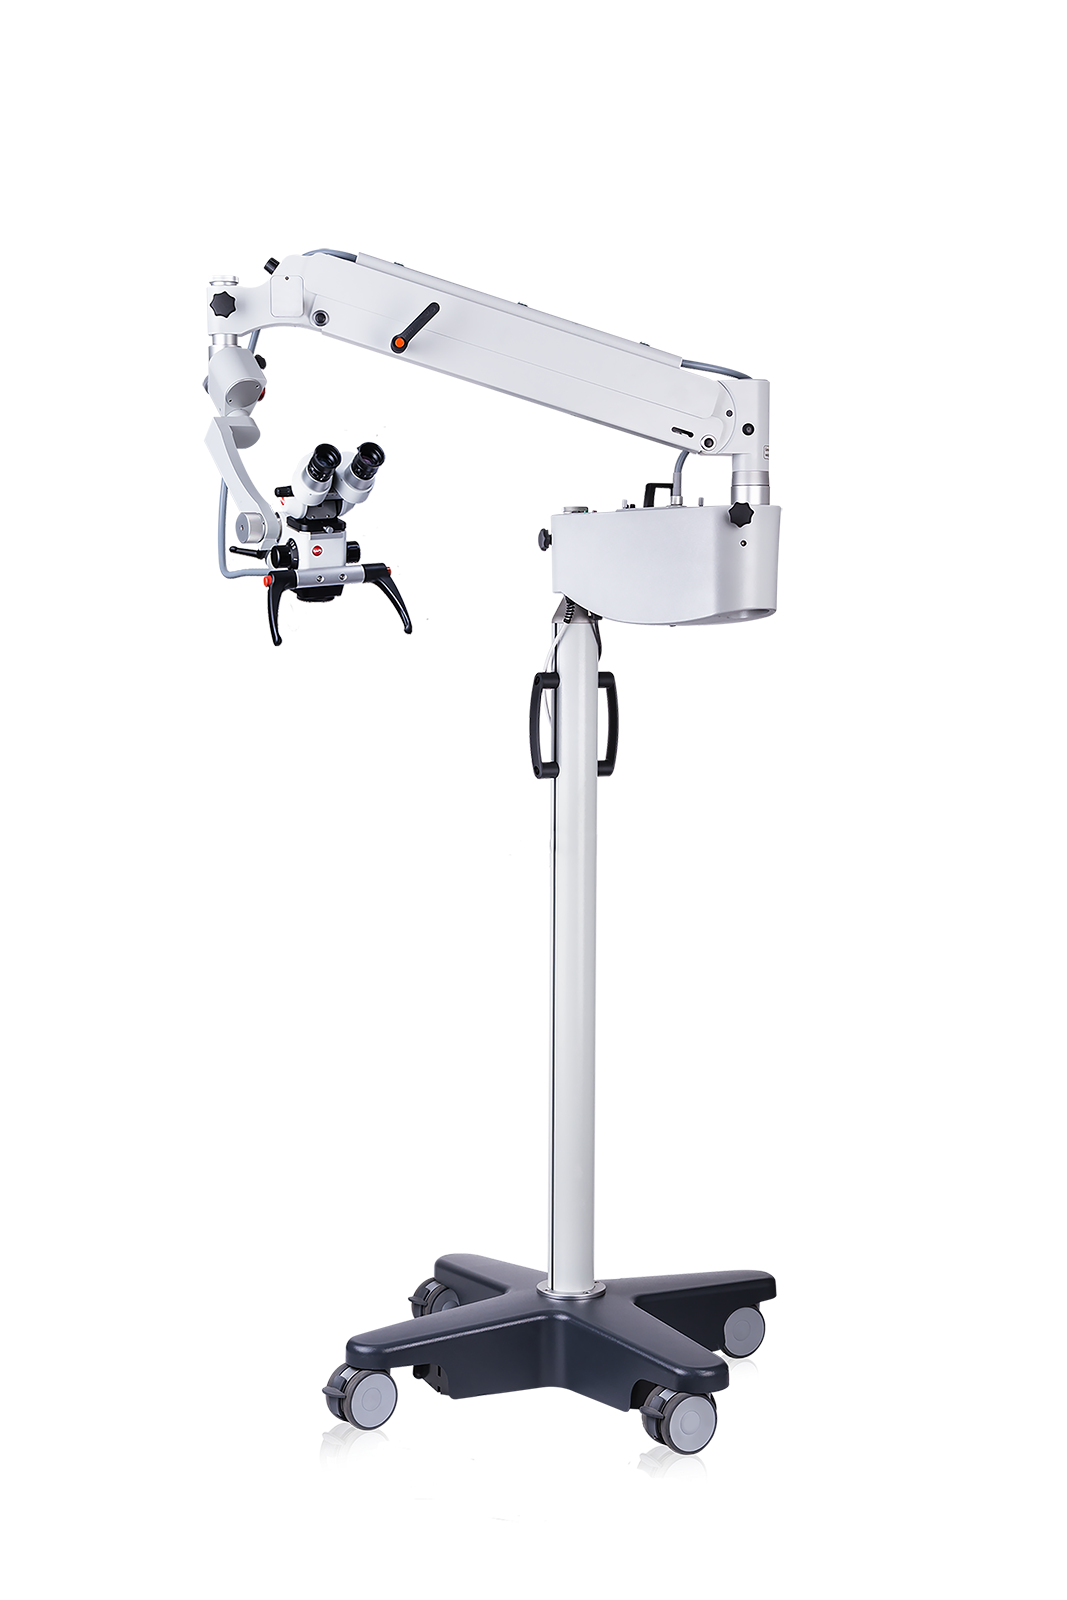 Ent surgery microscopes